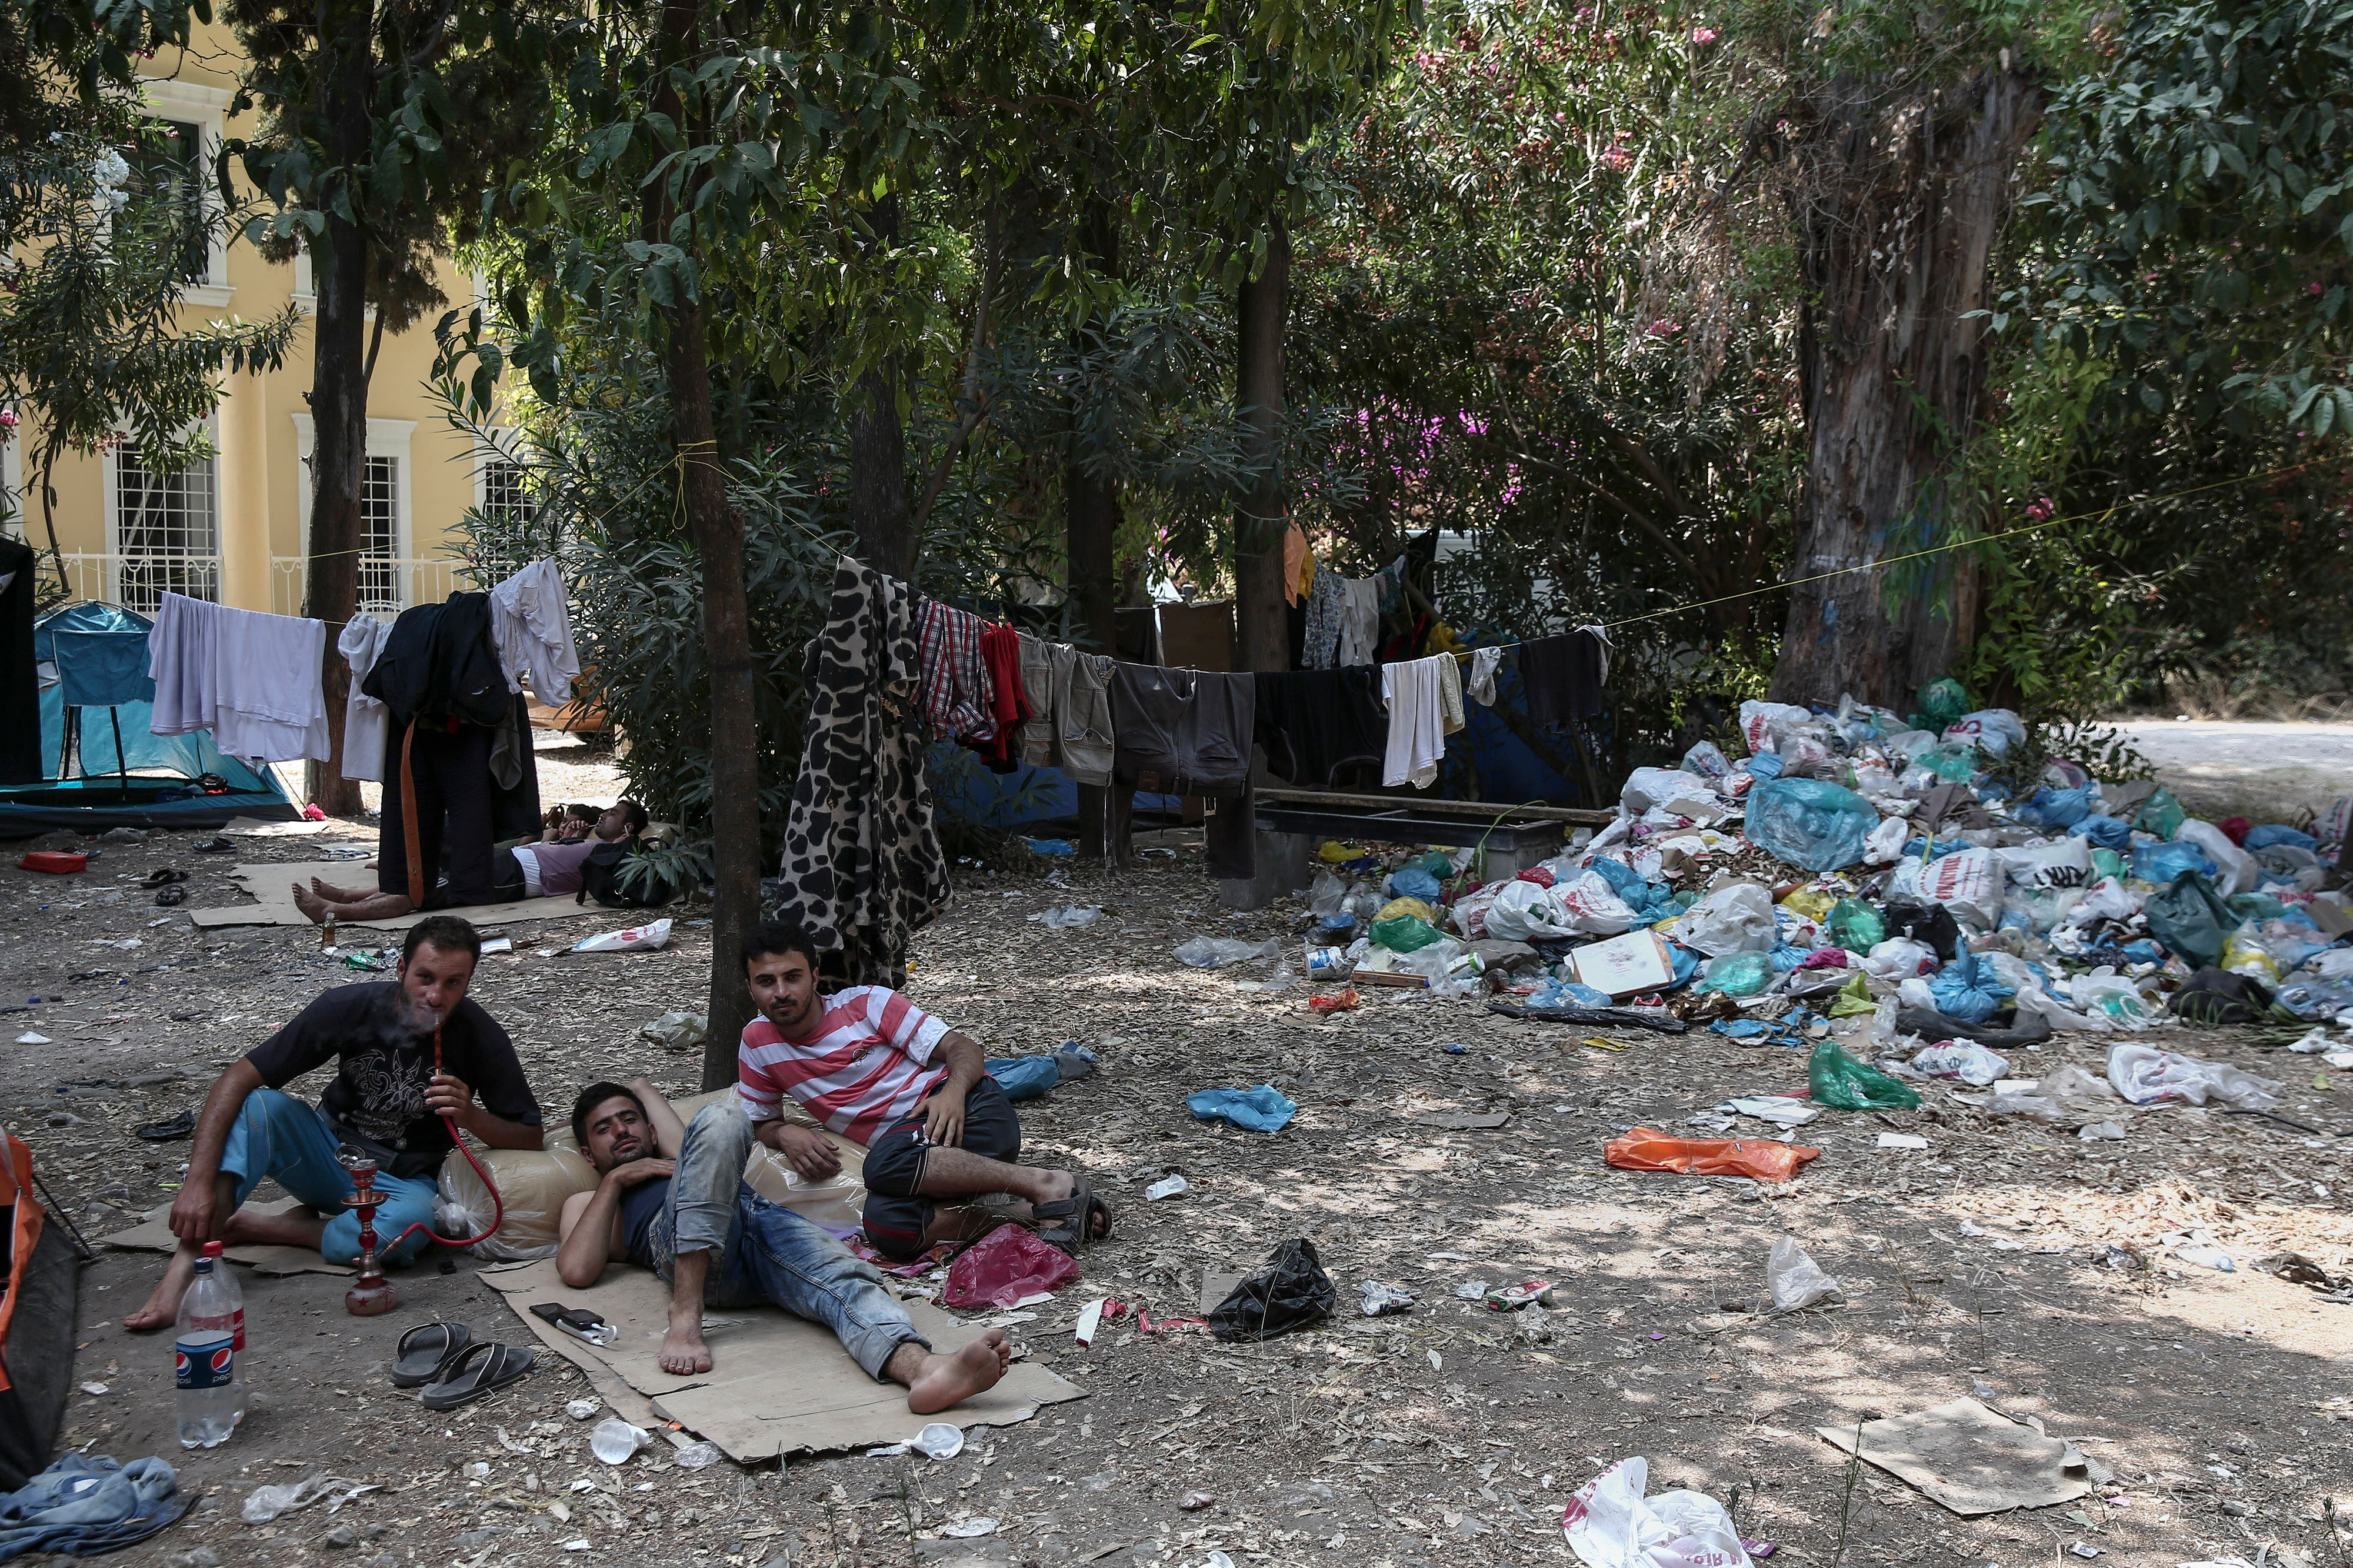 authorities on the eastern Aegean Sea island have been heavily criticized for their treatment of the migrants - mostly refugees from Syria. (AP)